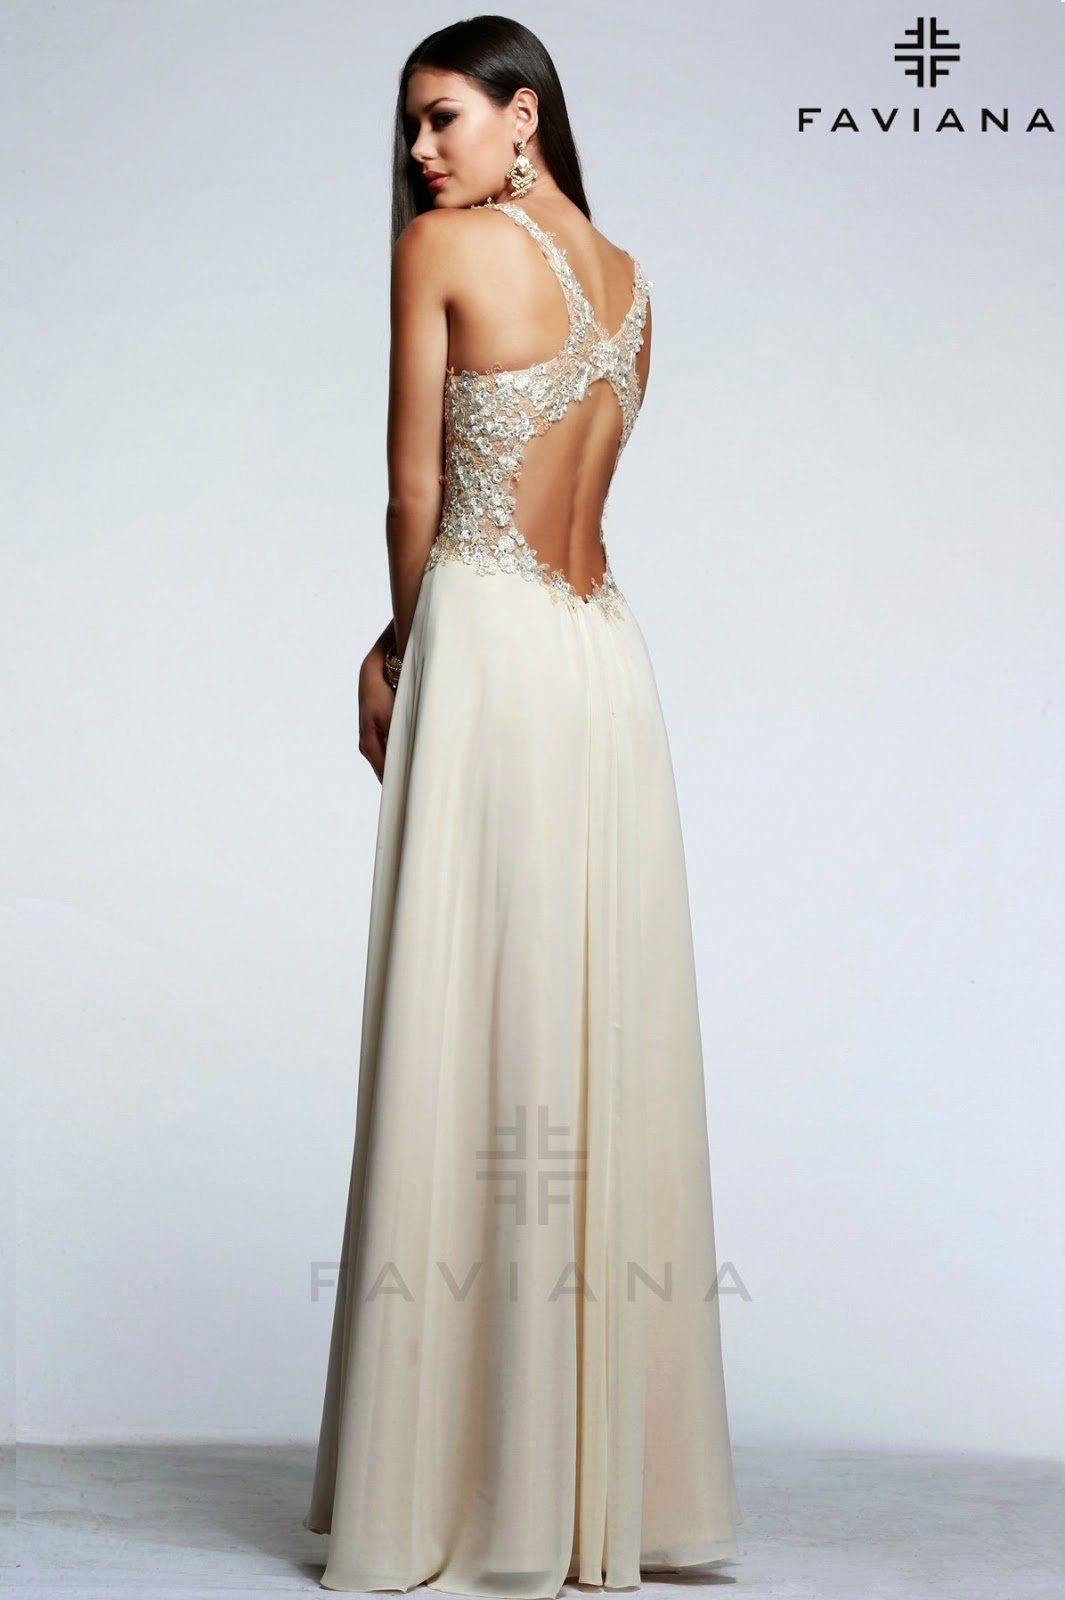 http://www.faviana.com/catalog/dress-s7533?category=white-ivory-collection